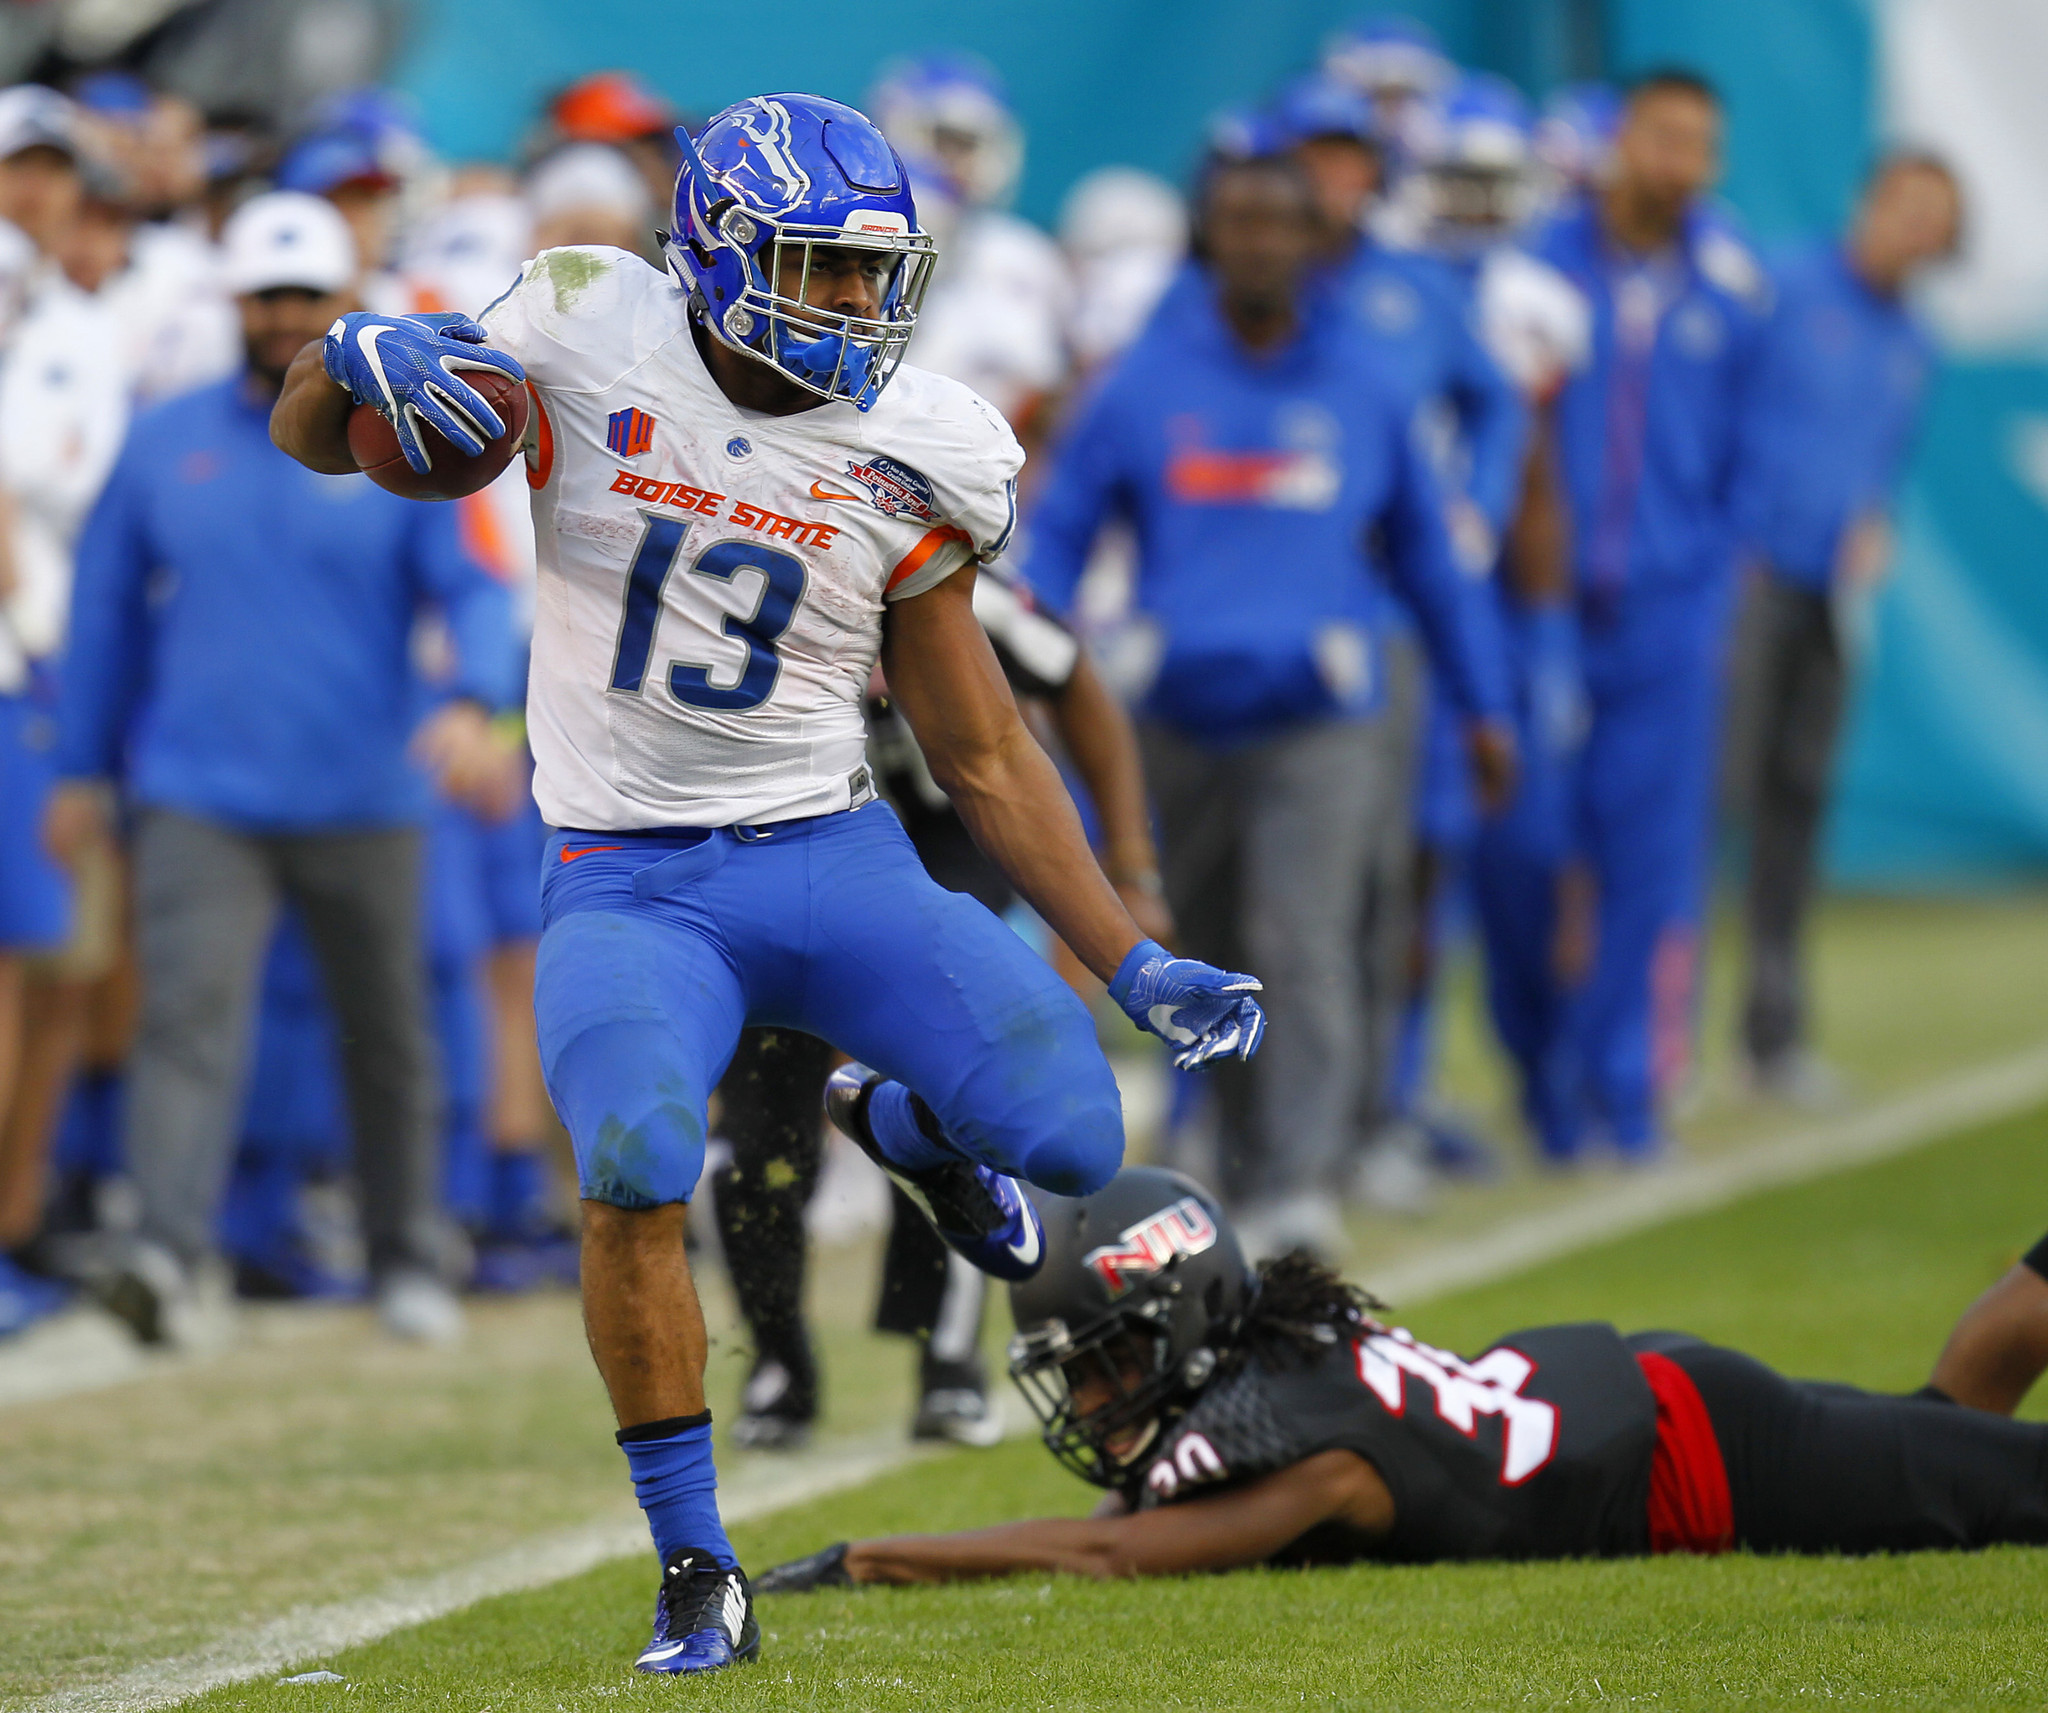 Os-college-football-countdown-no-33-boise-state-20160723